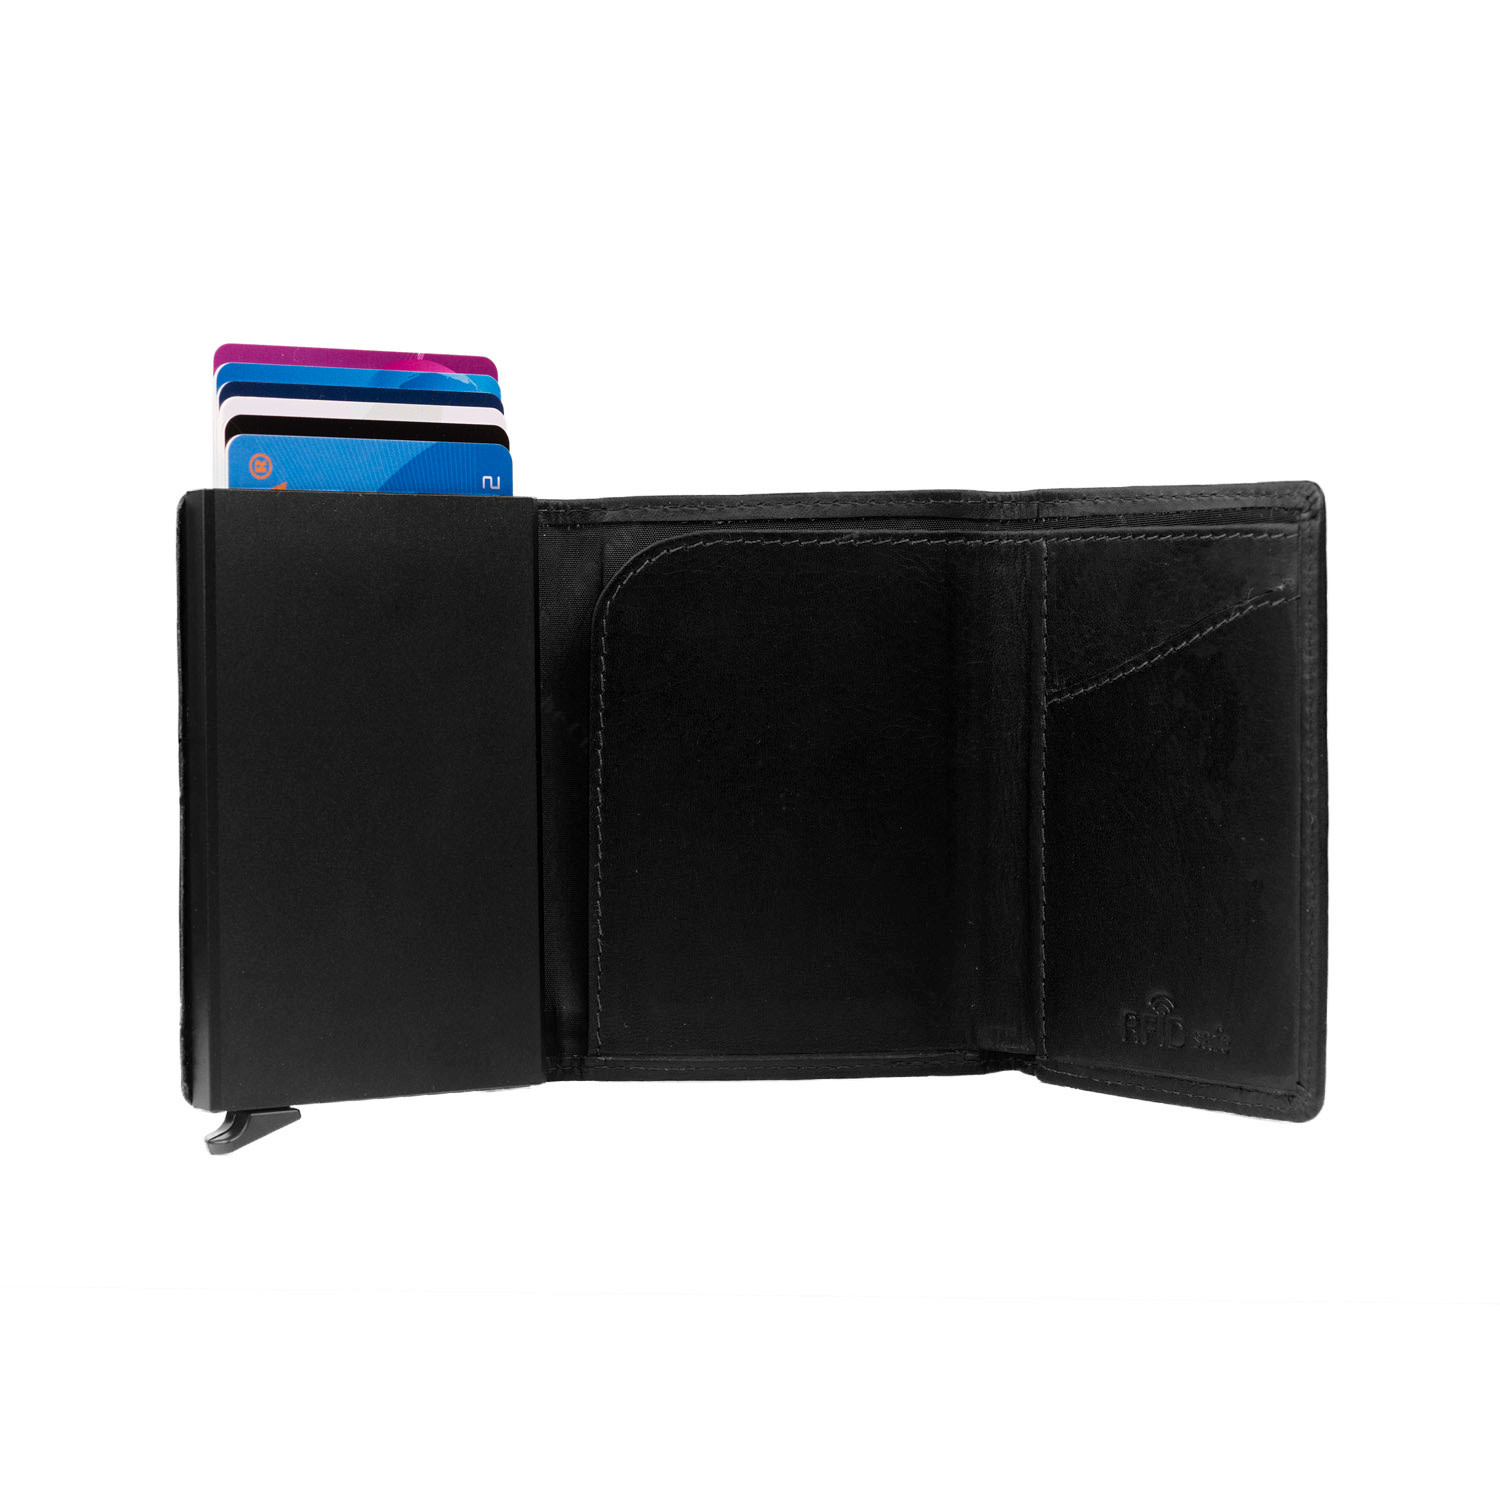 Chesterfield Chesterfield Lancaster Cardholder Waxed Leather Black